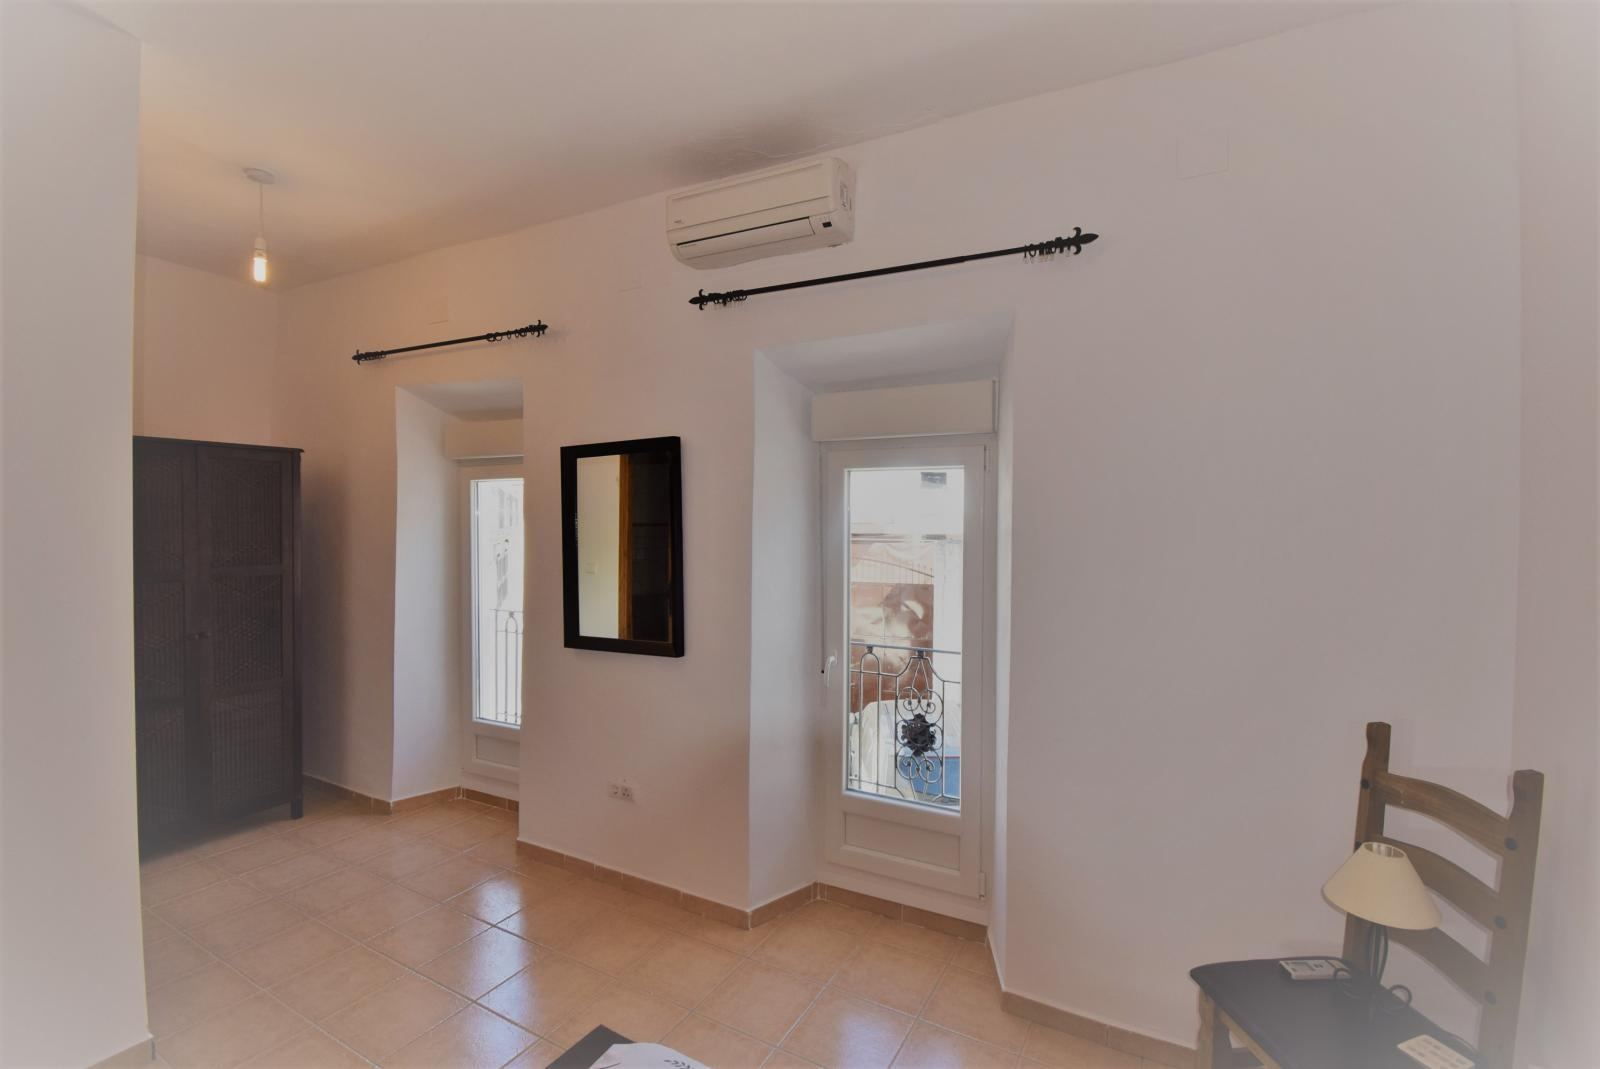 BRIGHT FULLY RENOVATED TOWNHOUSE WITH PATIO AND 2 SUNNY TERRACES